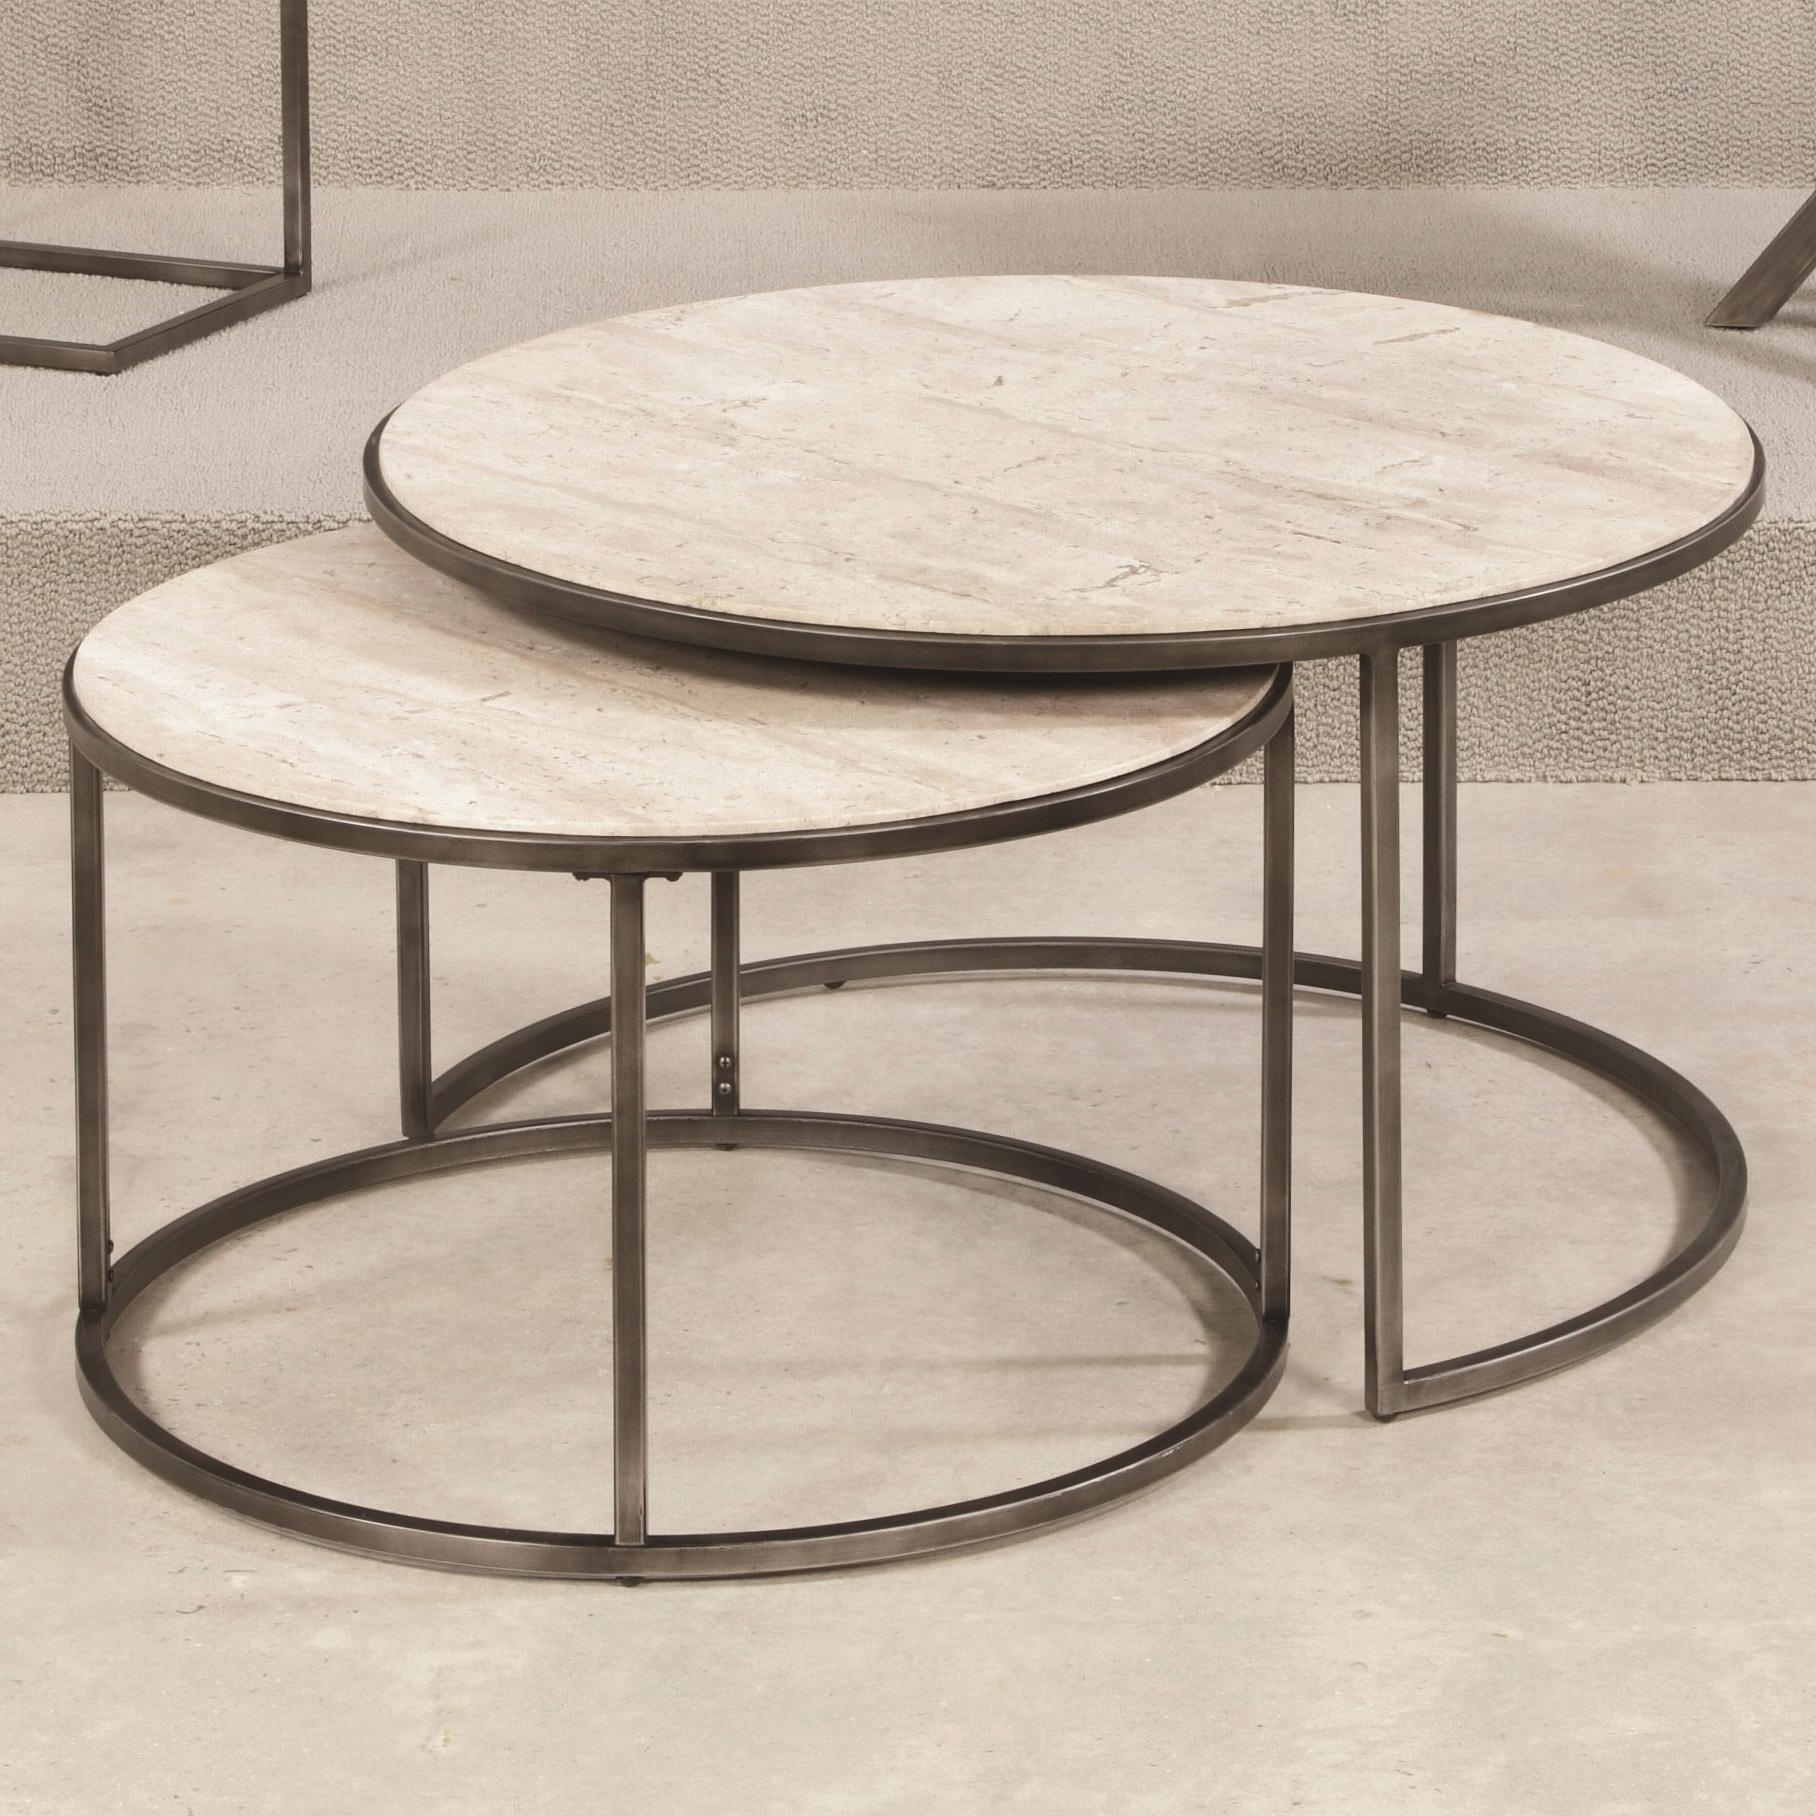 Hammary Modern Basics Round Cocktail Table With Nesting Tables With Regard To Well Known Elba Cocktail Tables (View 7 of 20)